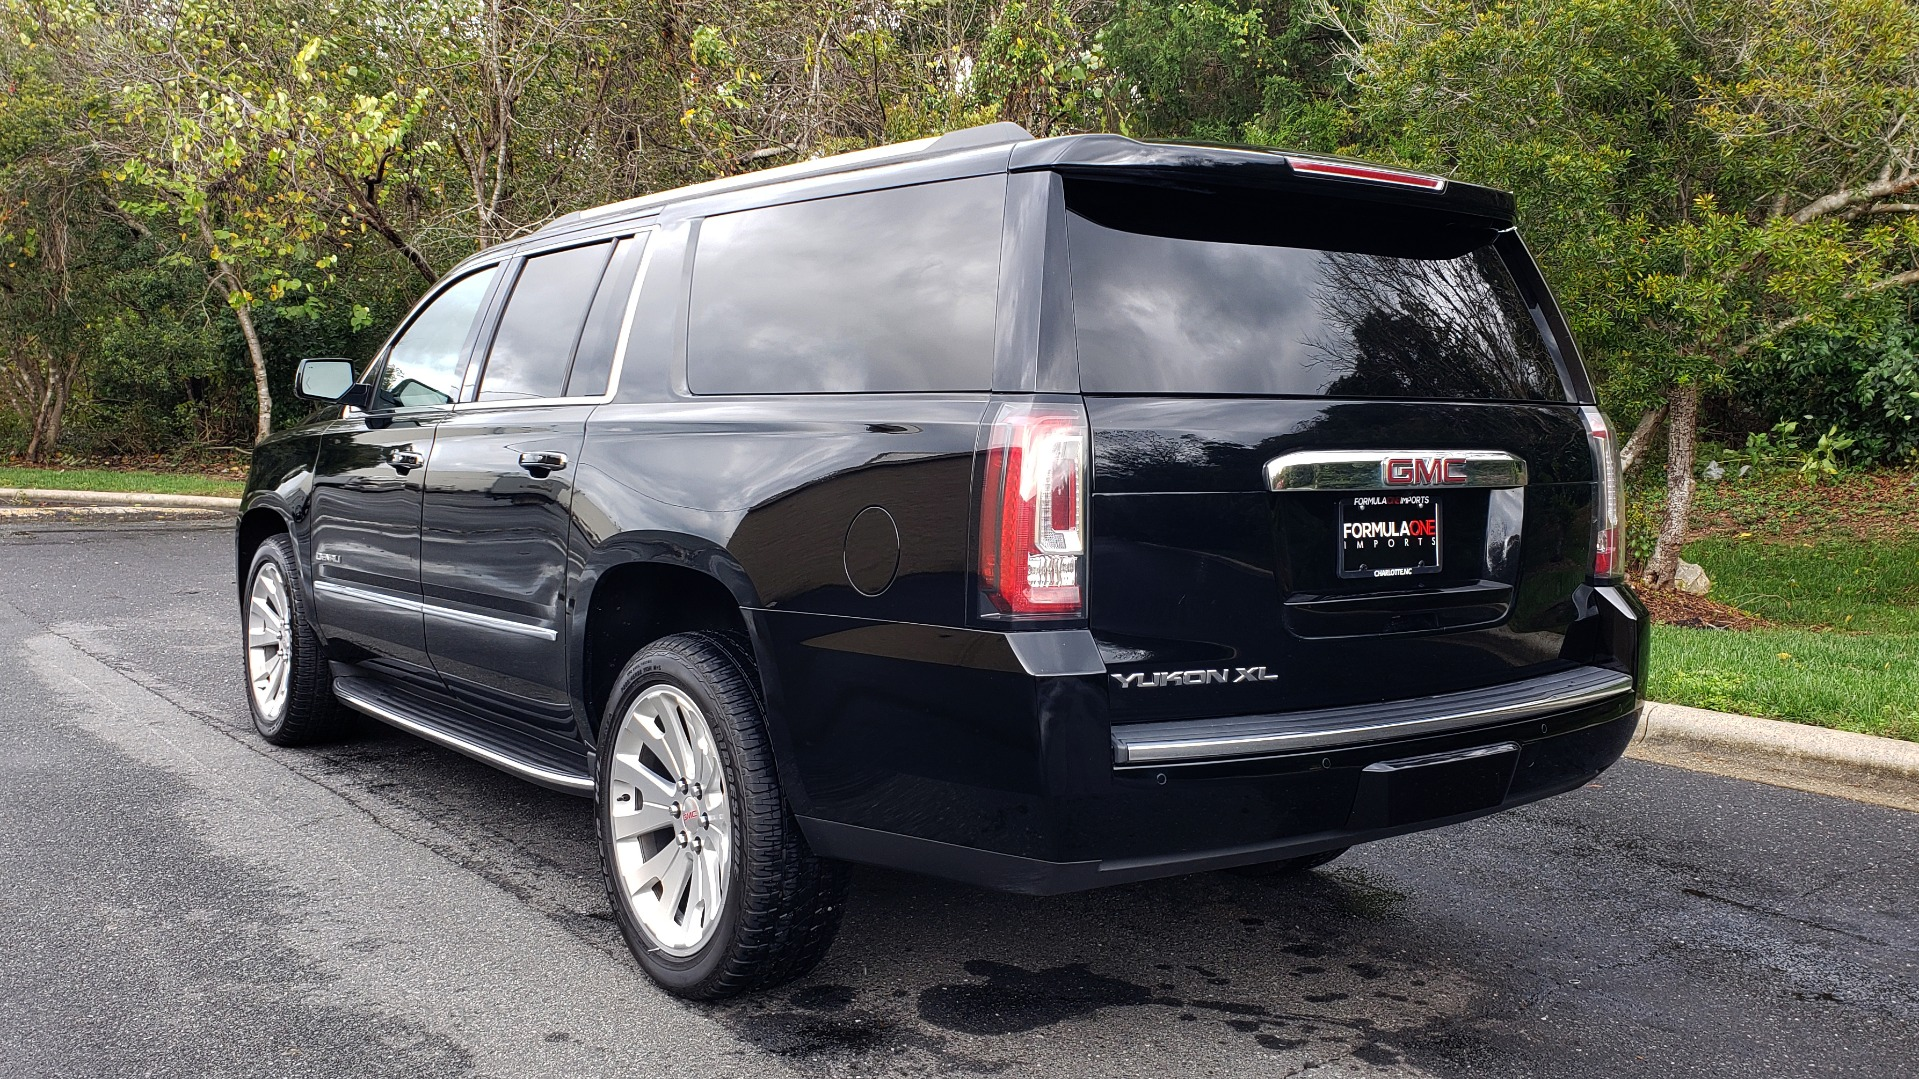 Used 2017 GMC YUKON XL DENALI 4WD / NAV / SUNROOF / ENT / 3-ROWS / BOSE / REARVIEW for sale Sold at Formula Imports in Charlotte NC 28227 3